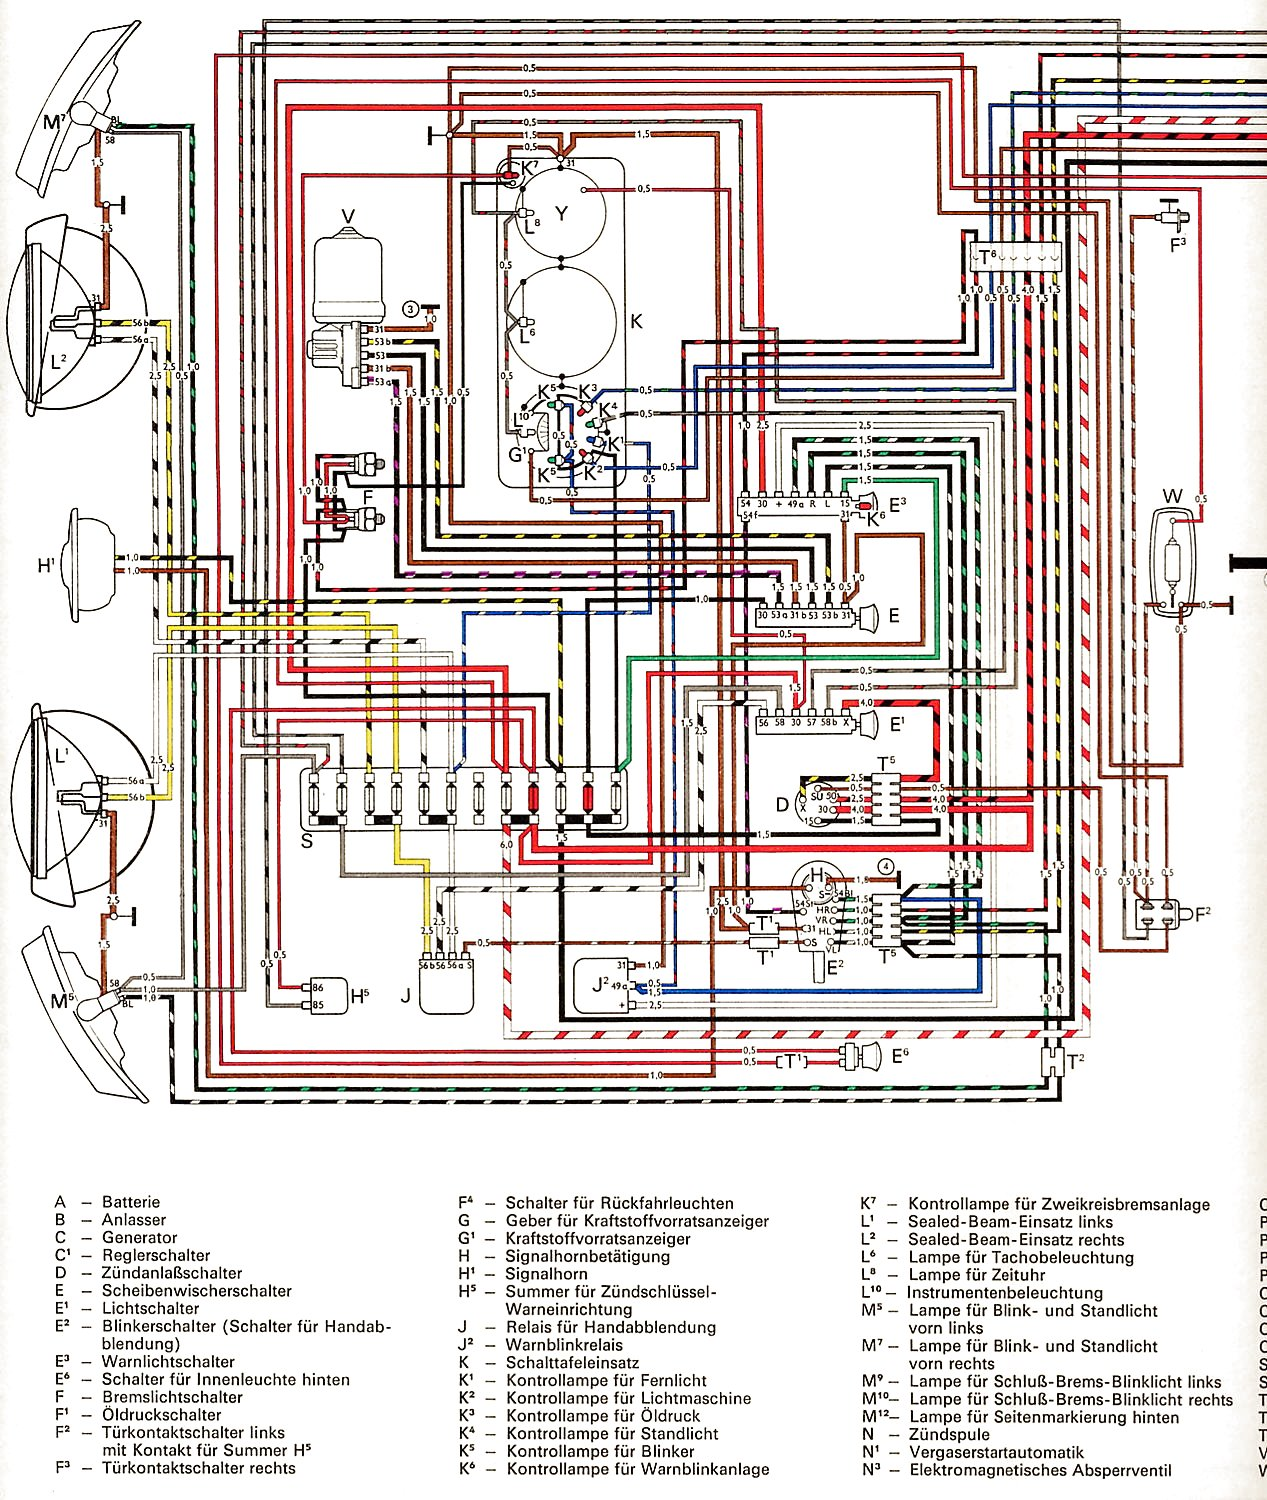 Transporter_USA_from_August_1970 1 vw wiring diagrams 1970 vw bug wiring diagram at crackthecode.co